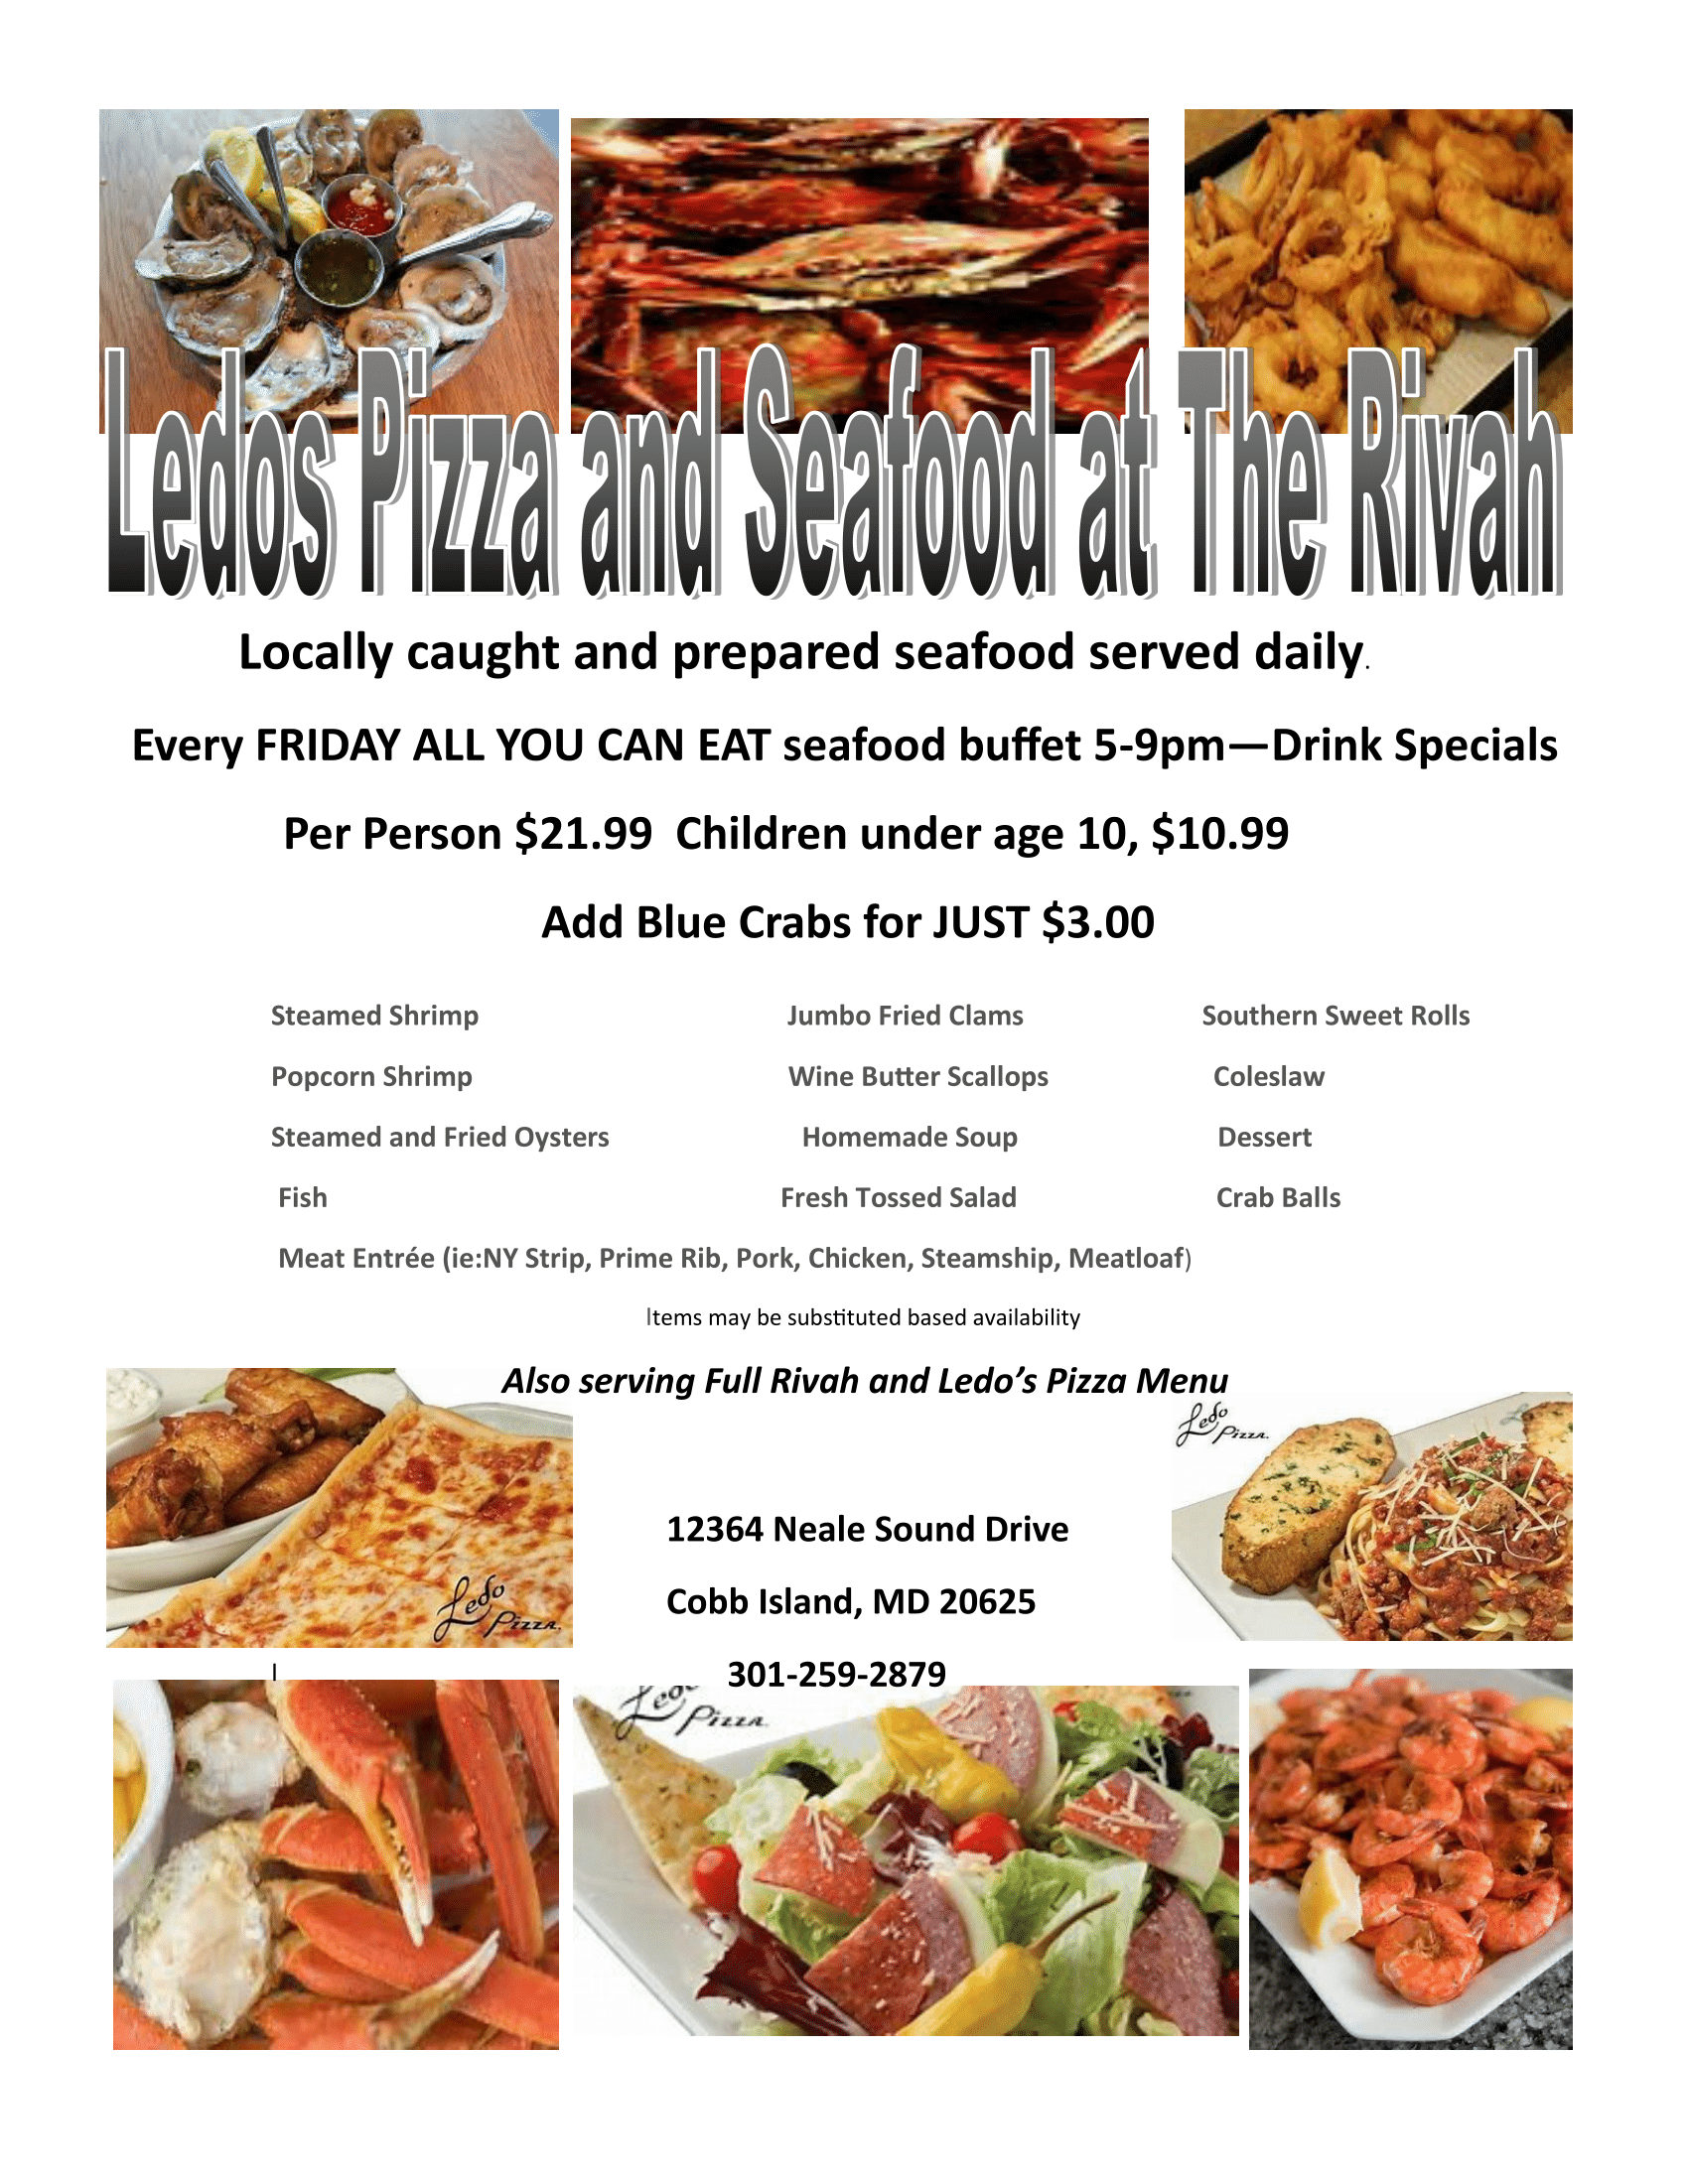 Ledo's PIzza and Seafood at the Rivah. Locally caught and prepared seafood served daily. Every friday all you can eat seafood buffet 5 to 9 PM - drink specials per person $21.99, children under age 10 - $10.99. Add blue crabs for just 3 dollars. Steamed shrimp, popcorn shrimp, steamed and fried oysters, fish, meat entree (NY strip, prime rib, pork, chicken, steamship, meatloaf). Items may be substituted based on availability. Also serving full rivah and ledo's pizza menu. 12364 Neale Sound Drive. Cobb Island, MD 20625. (301) 259-2879